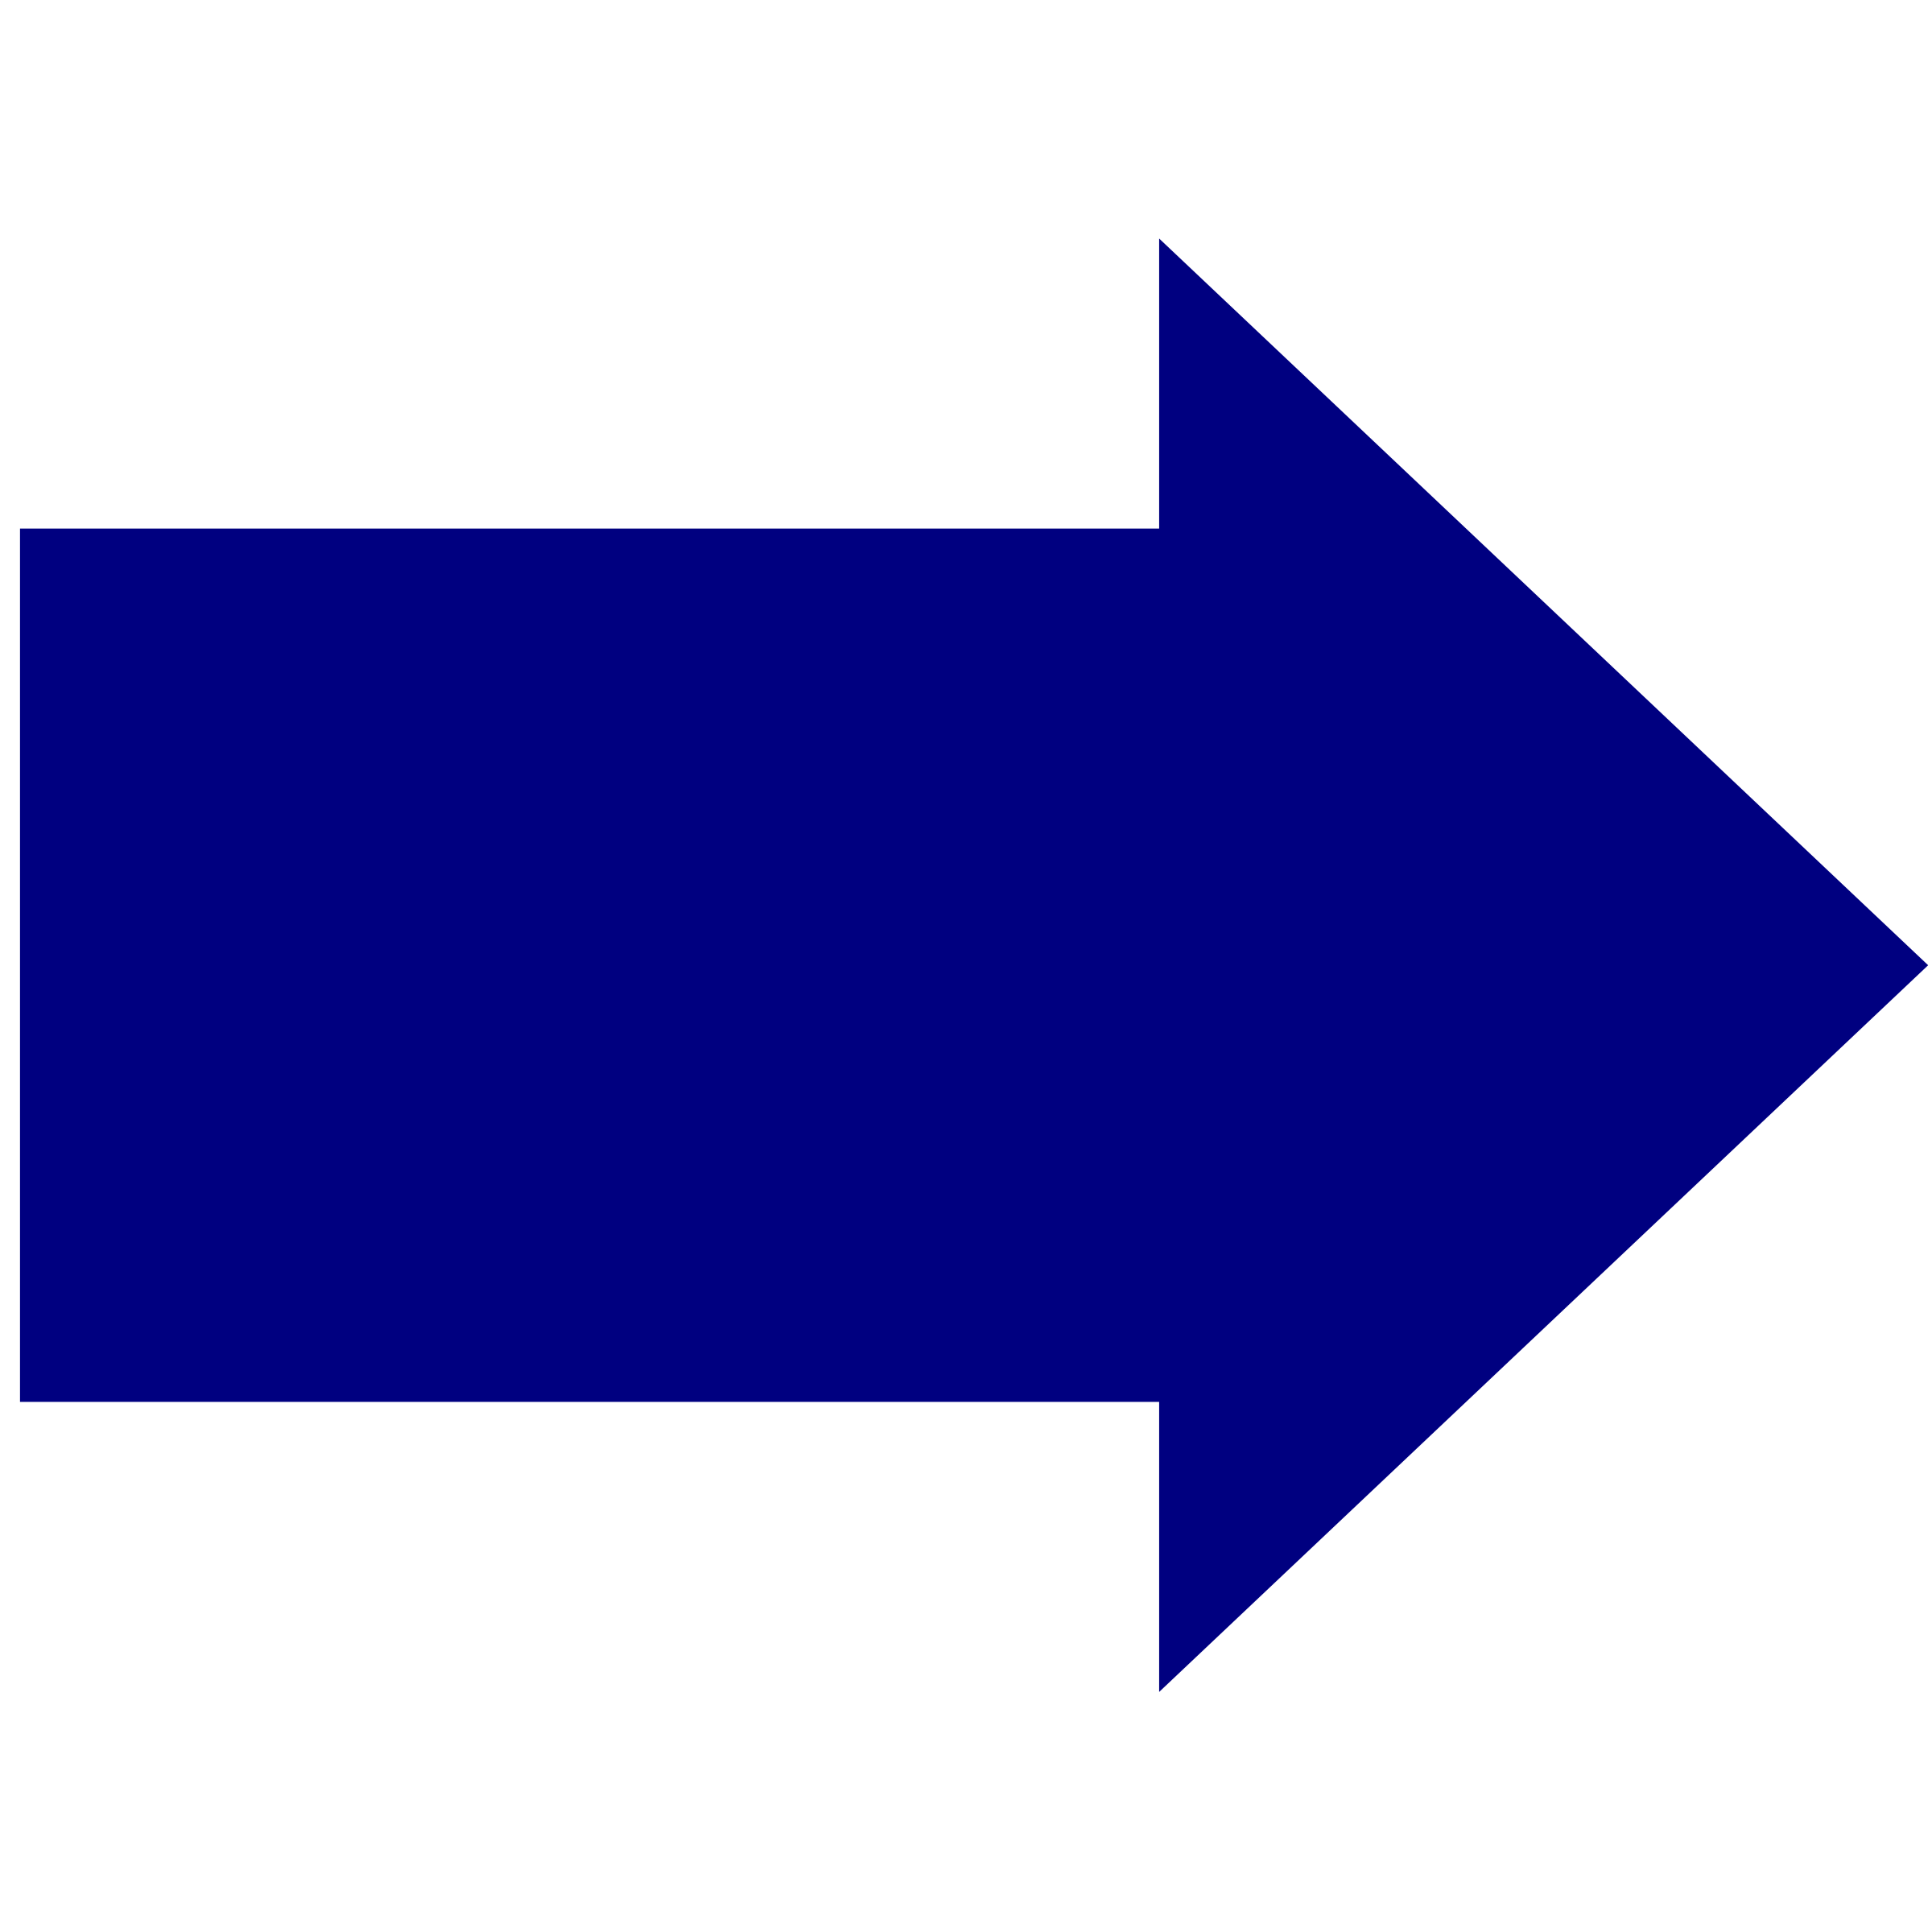 blue arrow by computating